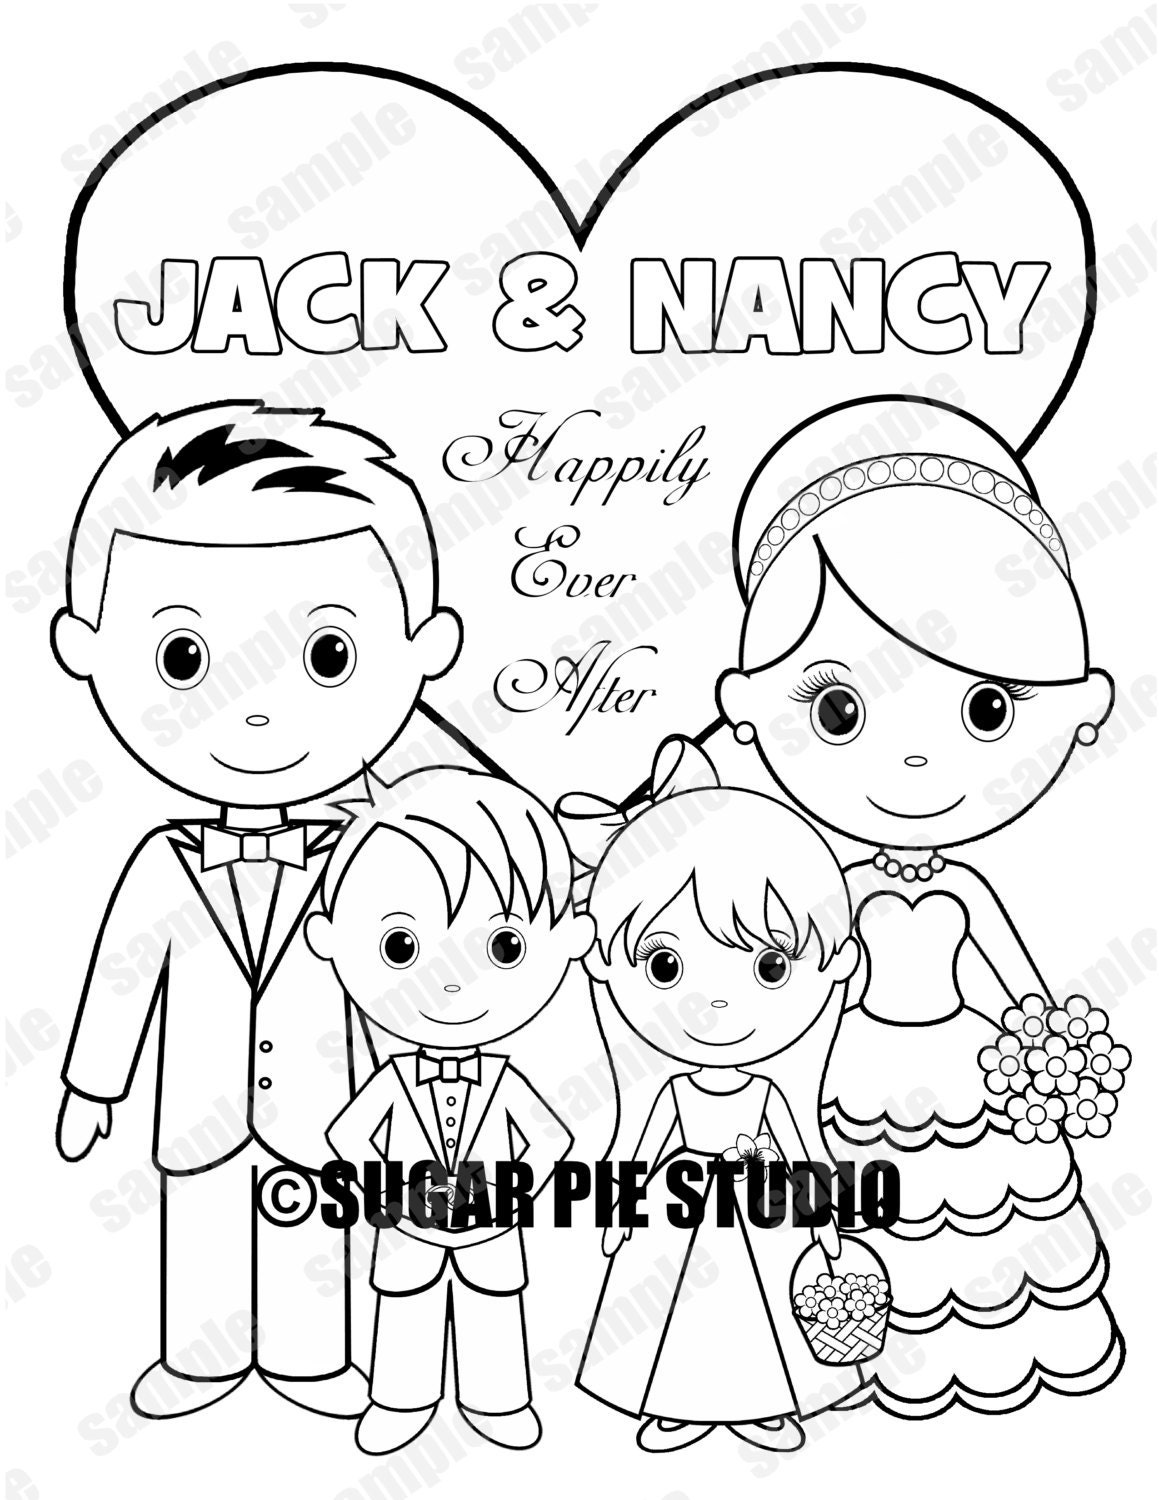 Personalized Childrens Wedding Coloring Activity Book Flower